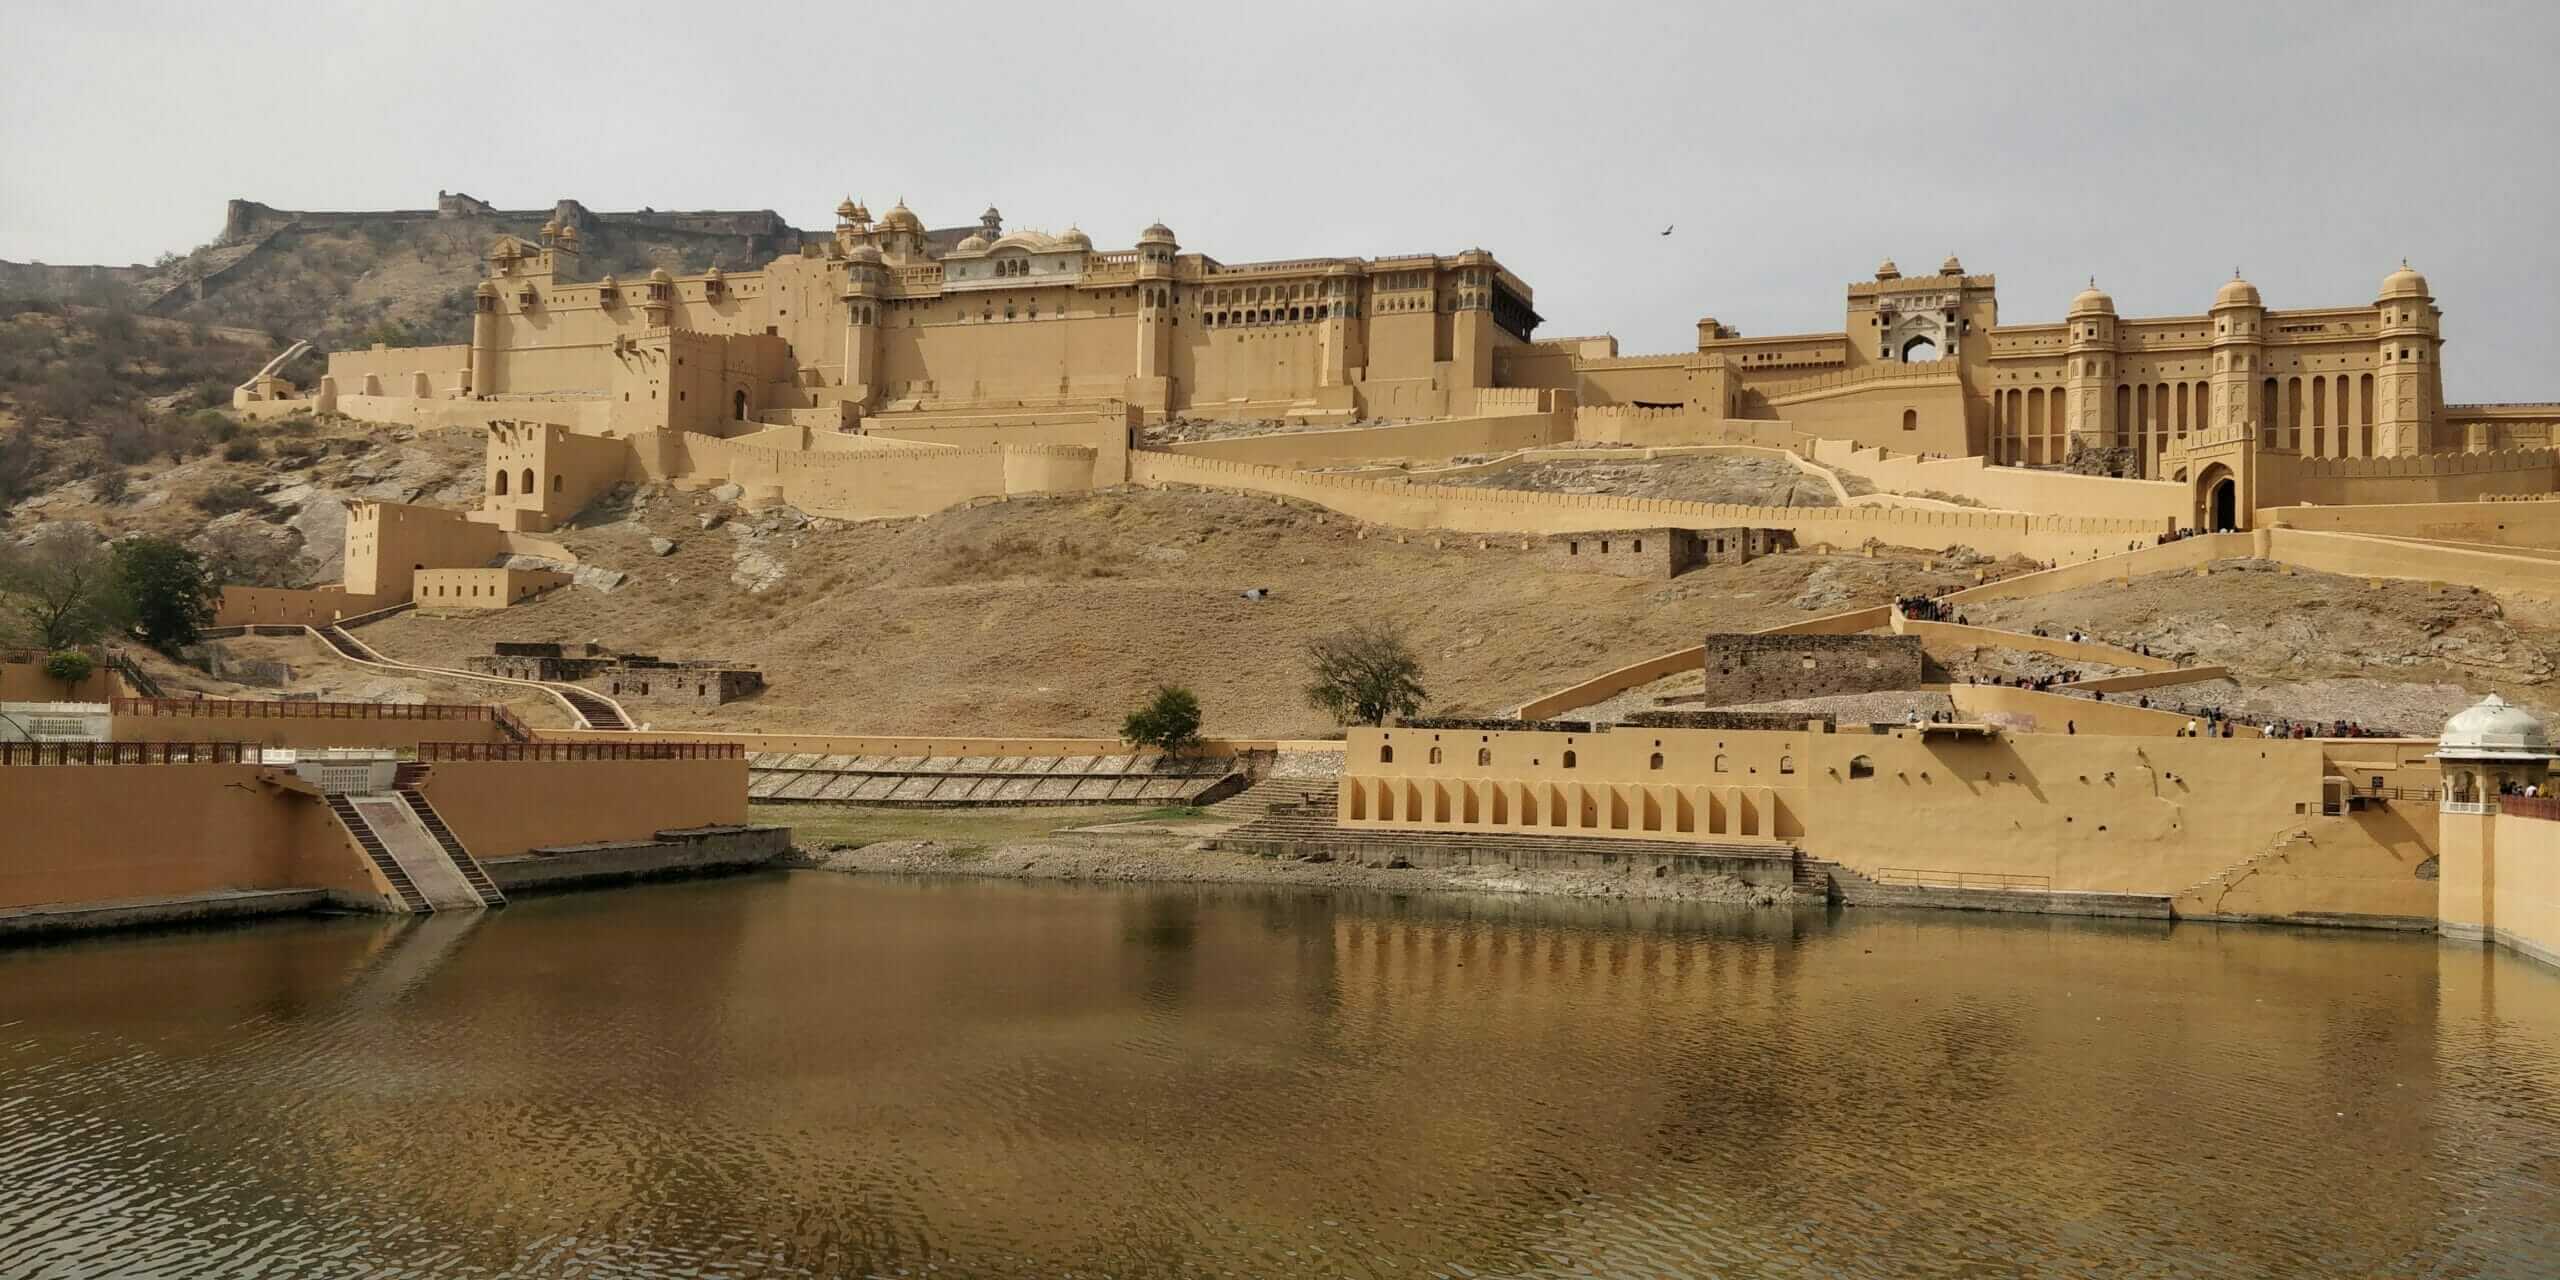 Photo of Amber Fort and Palace I saw while backpacking in Jaipur, India